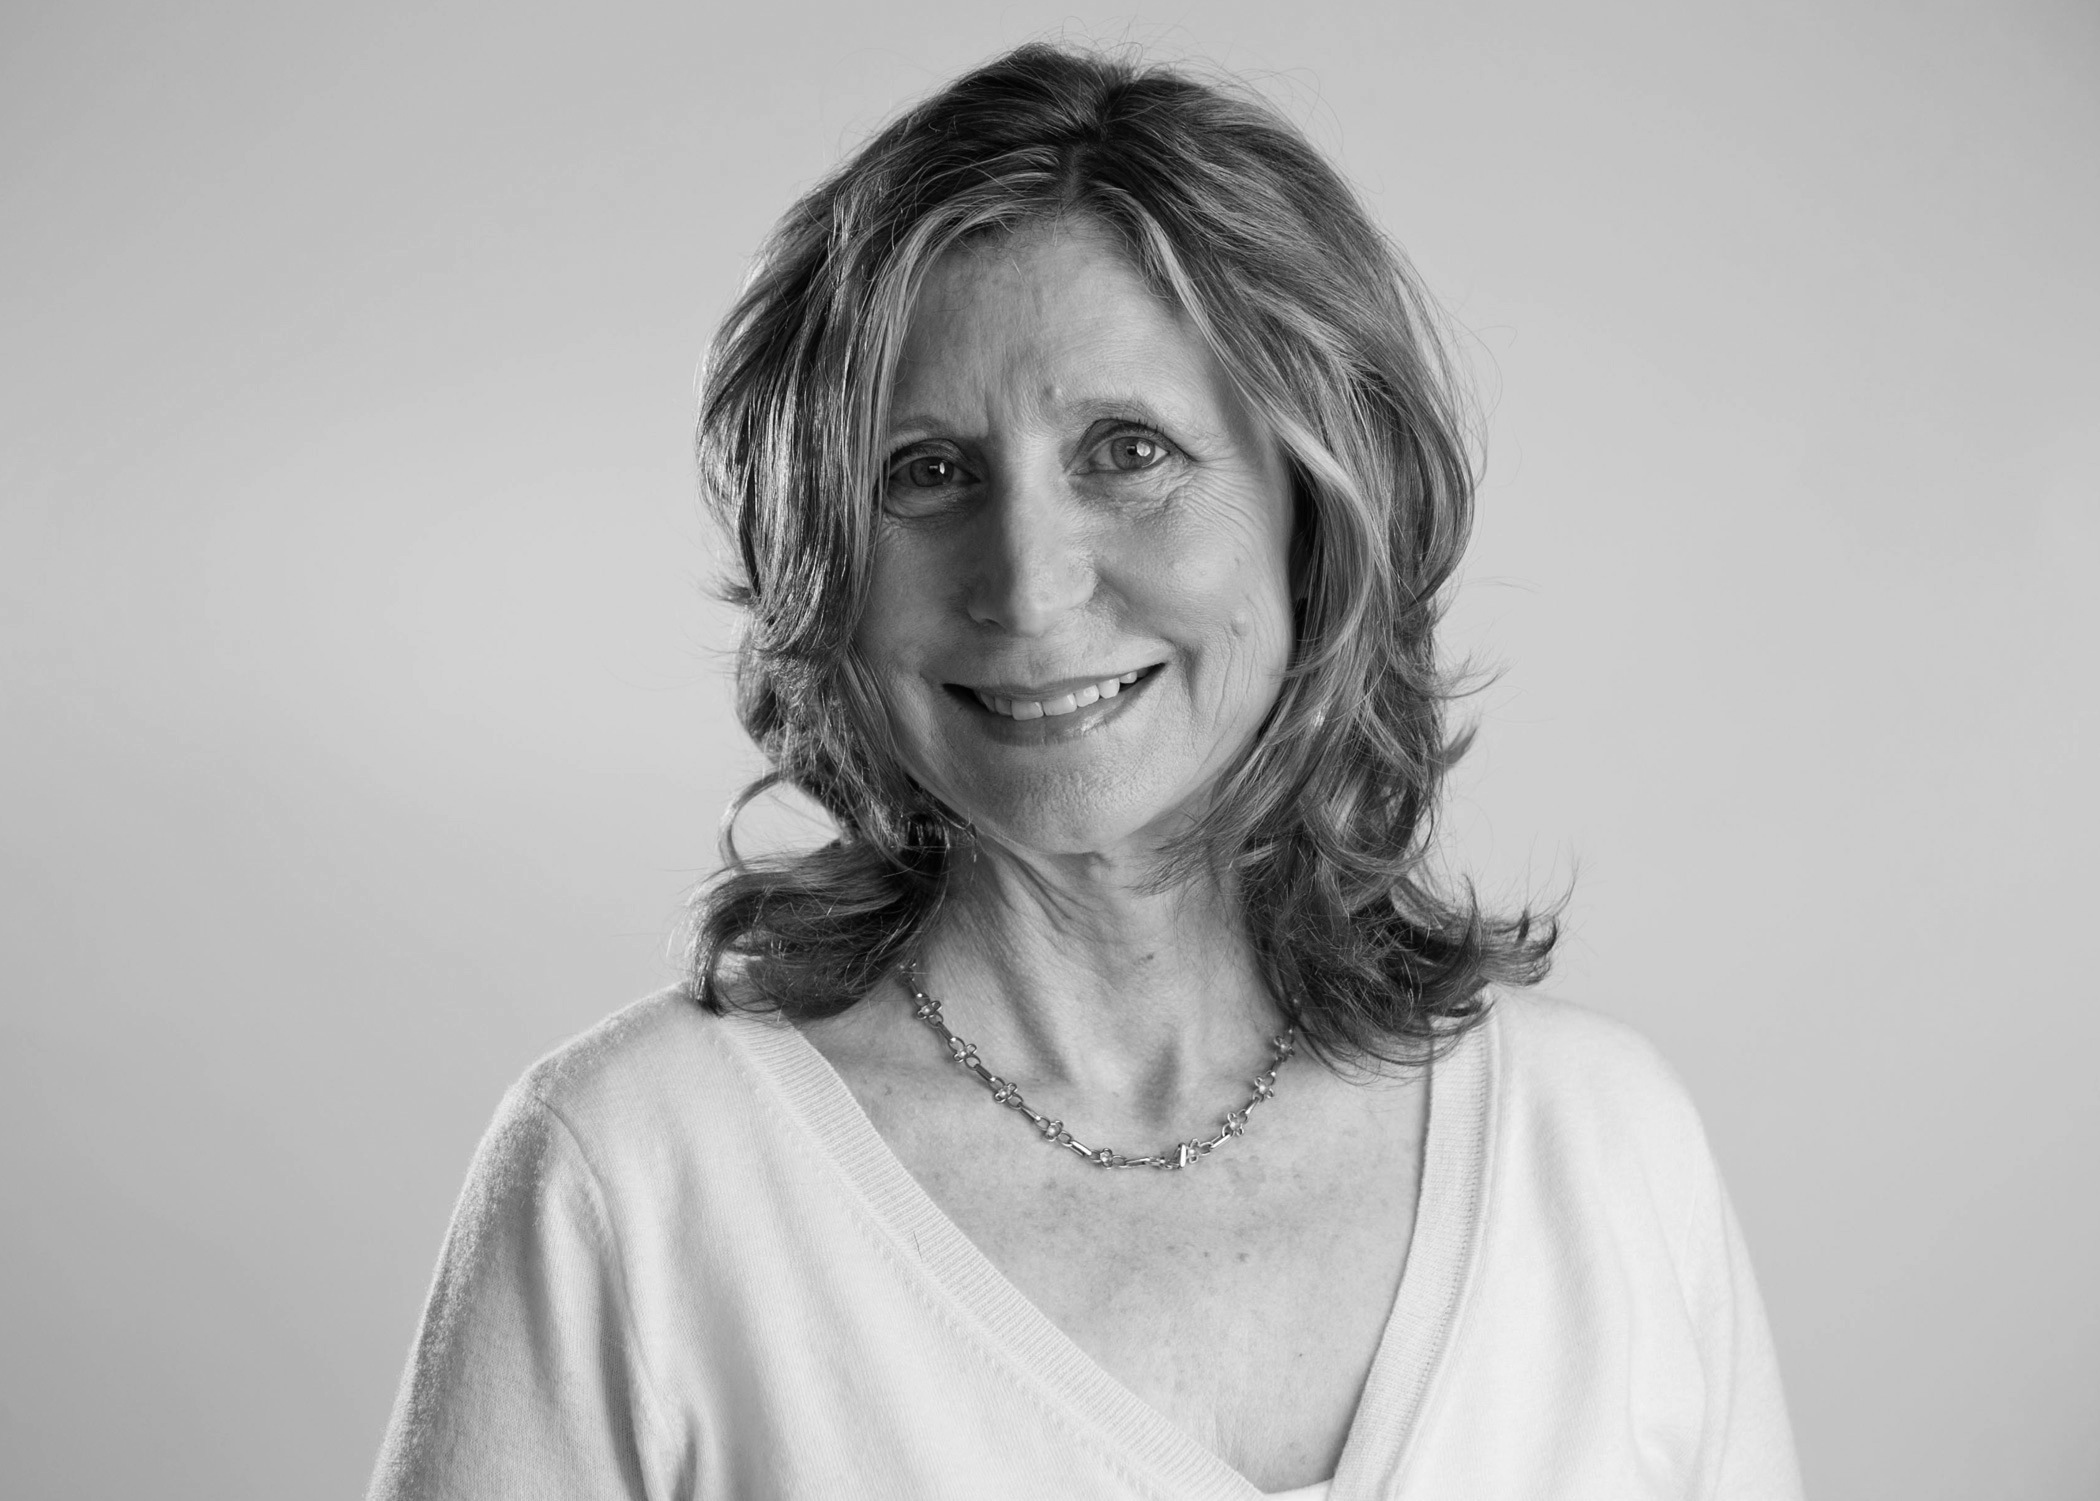 An Interview with Christina Hoff Sommers - The Dartmouth Review